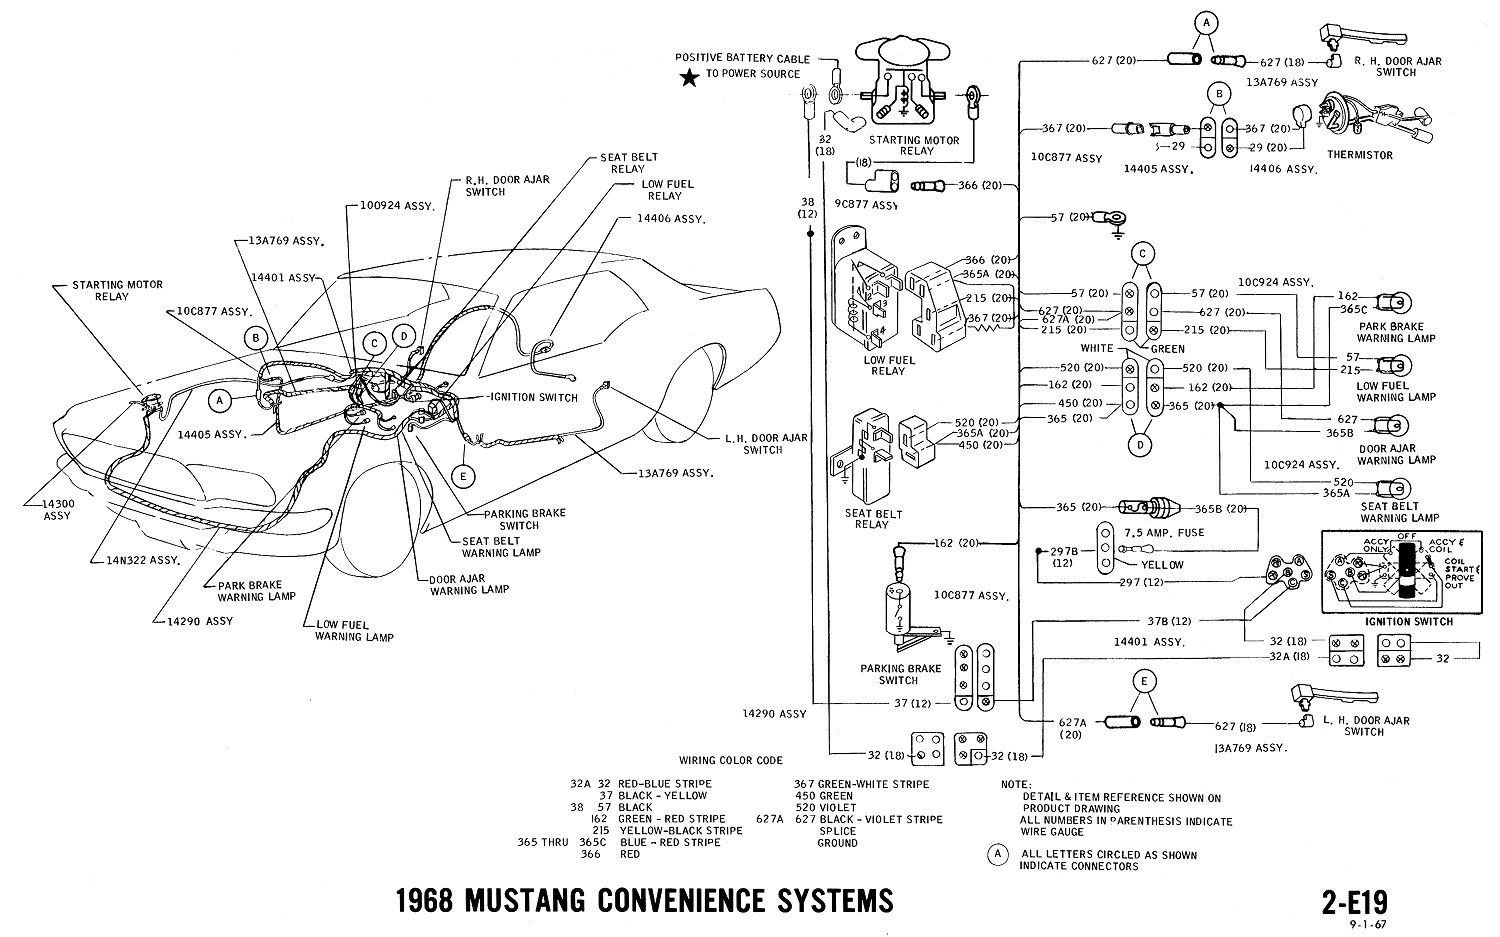 1967 Shelby Wiring Diagram Schematic 69 Vw Engine 1968 Mustang Diagrams And Vacuum Schematics Average Joe Pdf